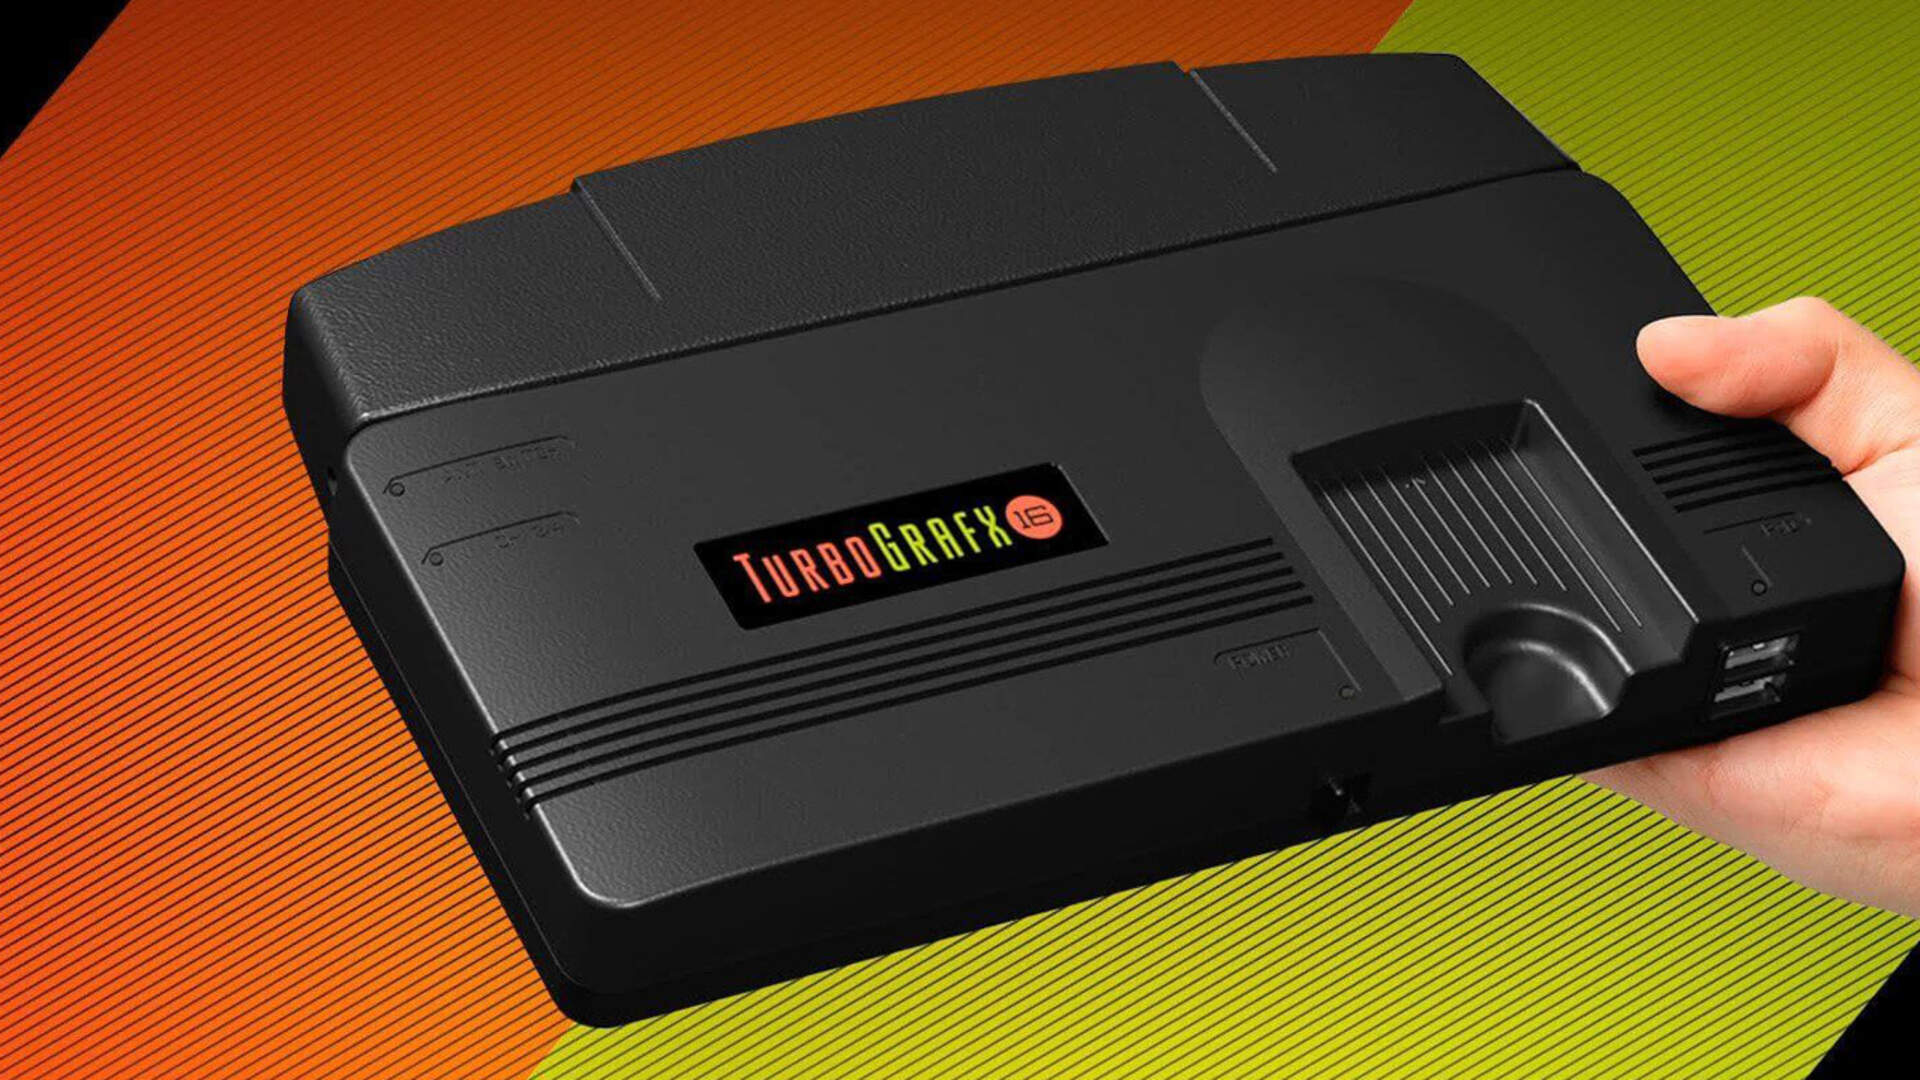 The TurboGrafx-16 Mini Should Start Arriving in North America Next Week